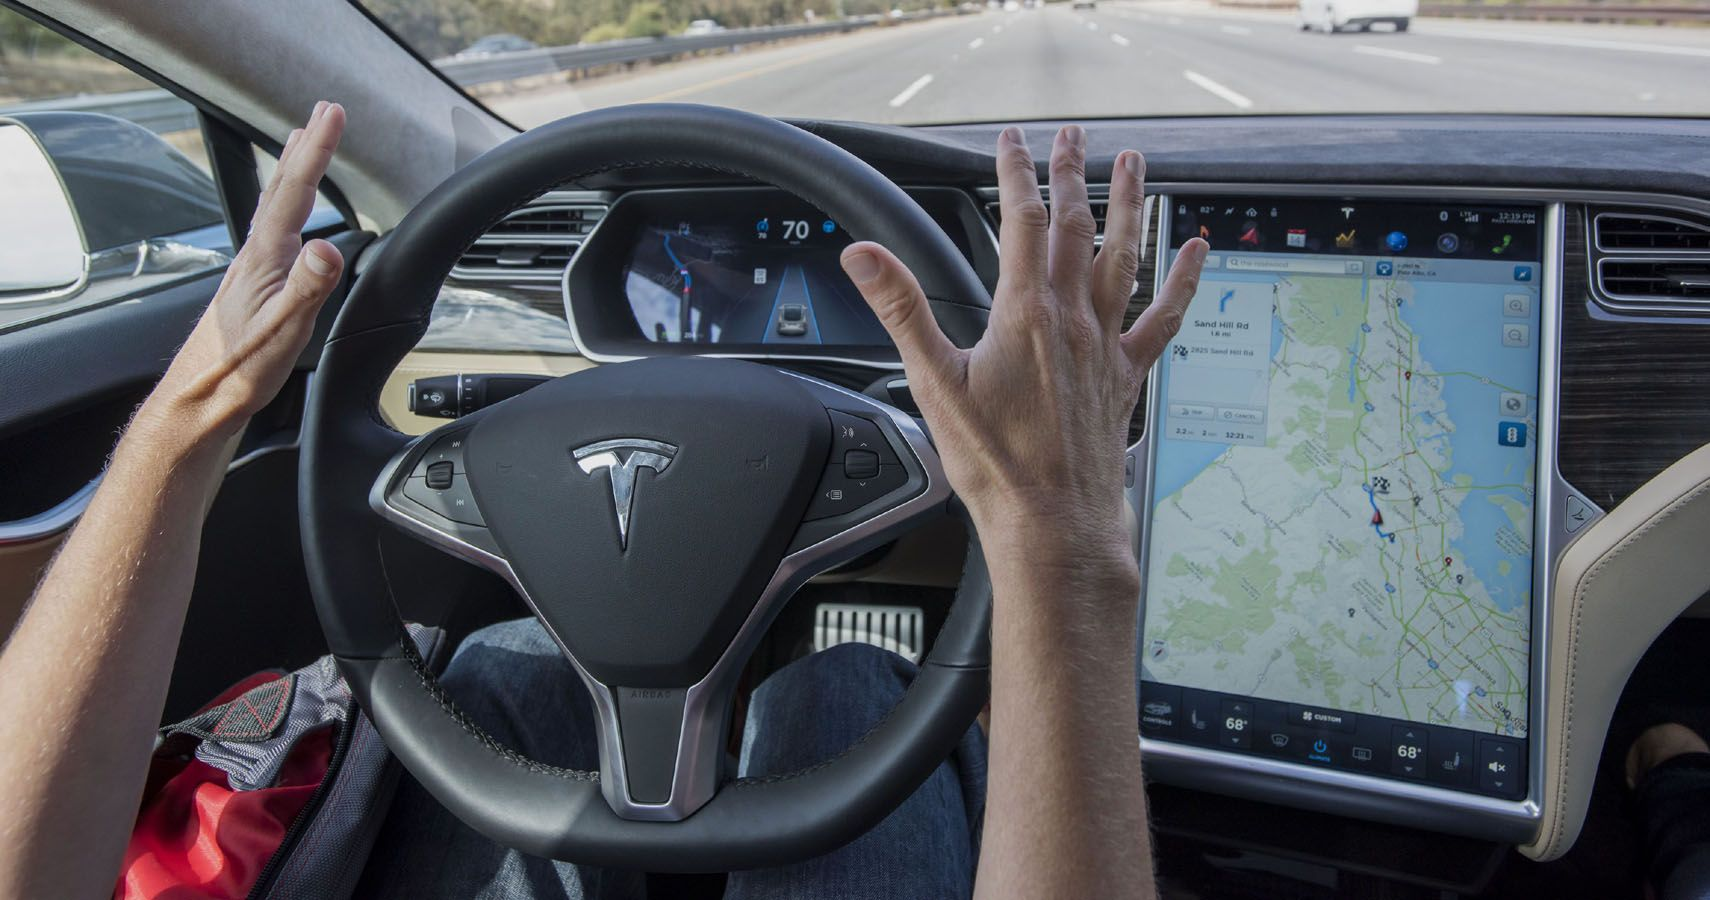 This Is Why Tesla's Self-Driving Car Dreams Are More A Nightmare